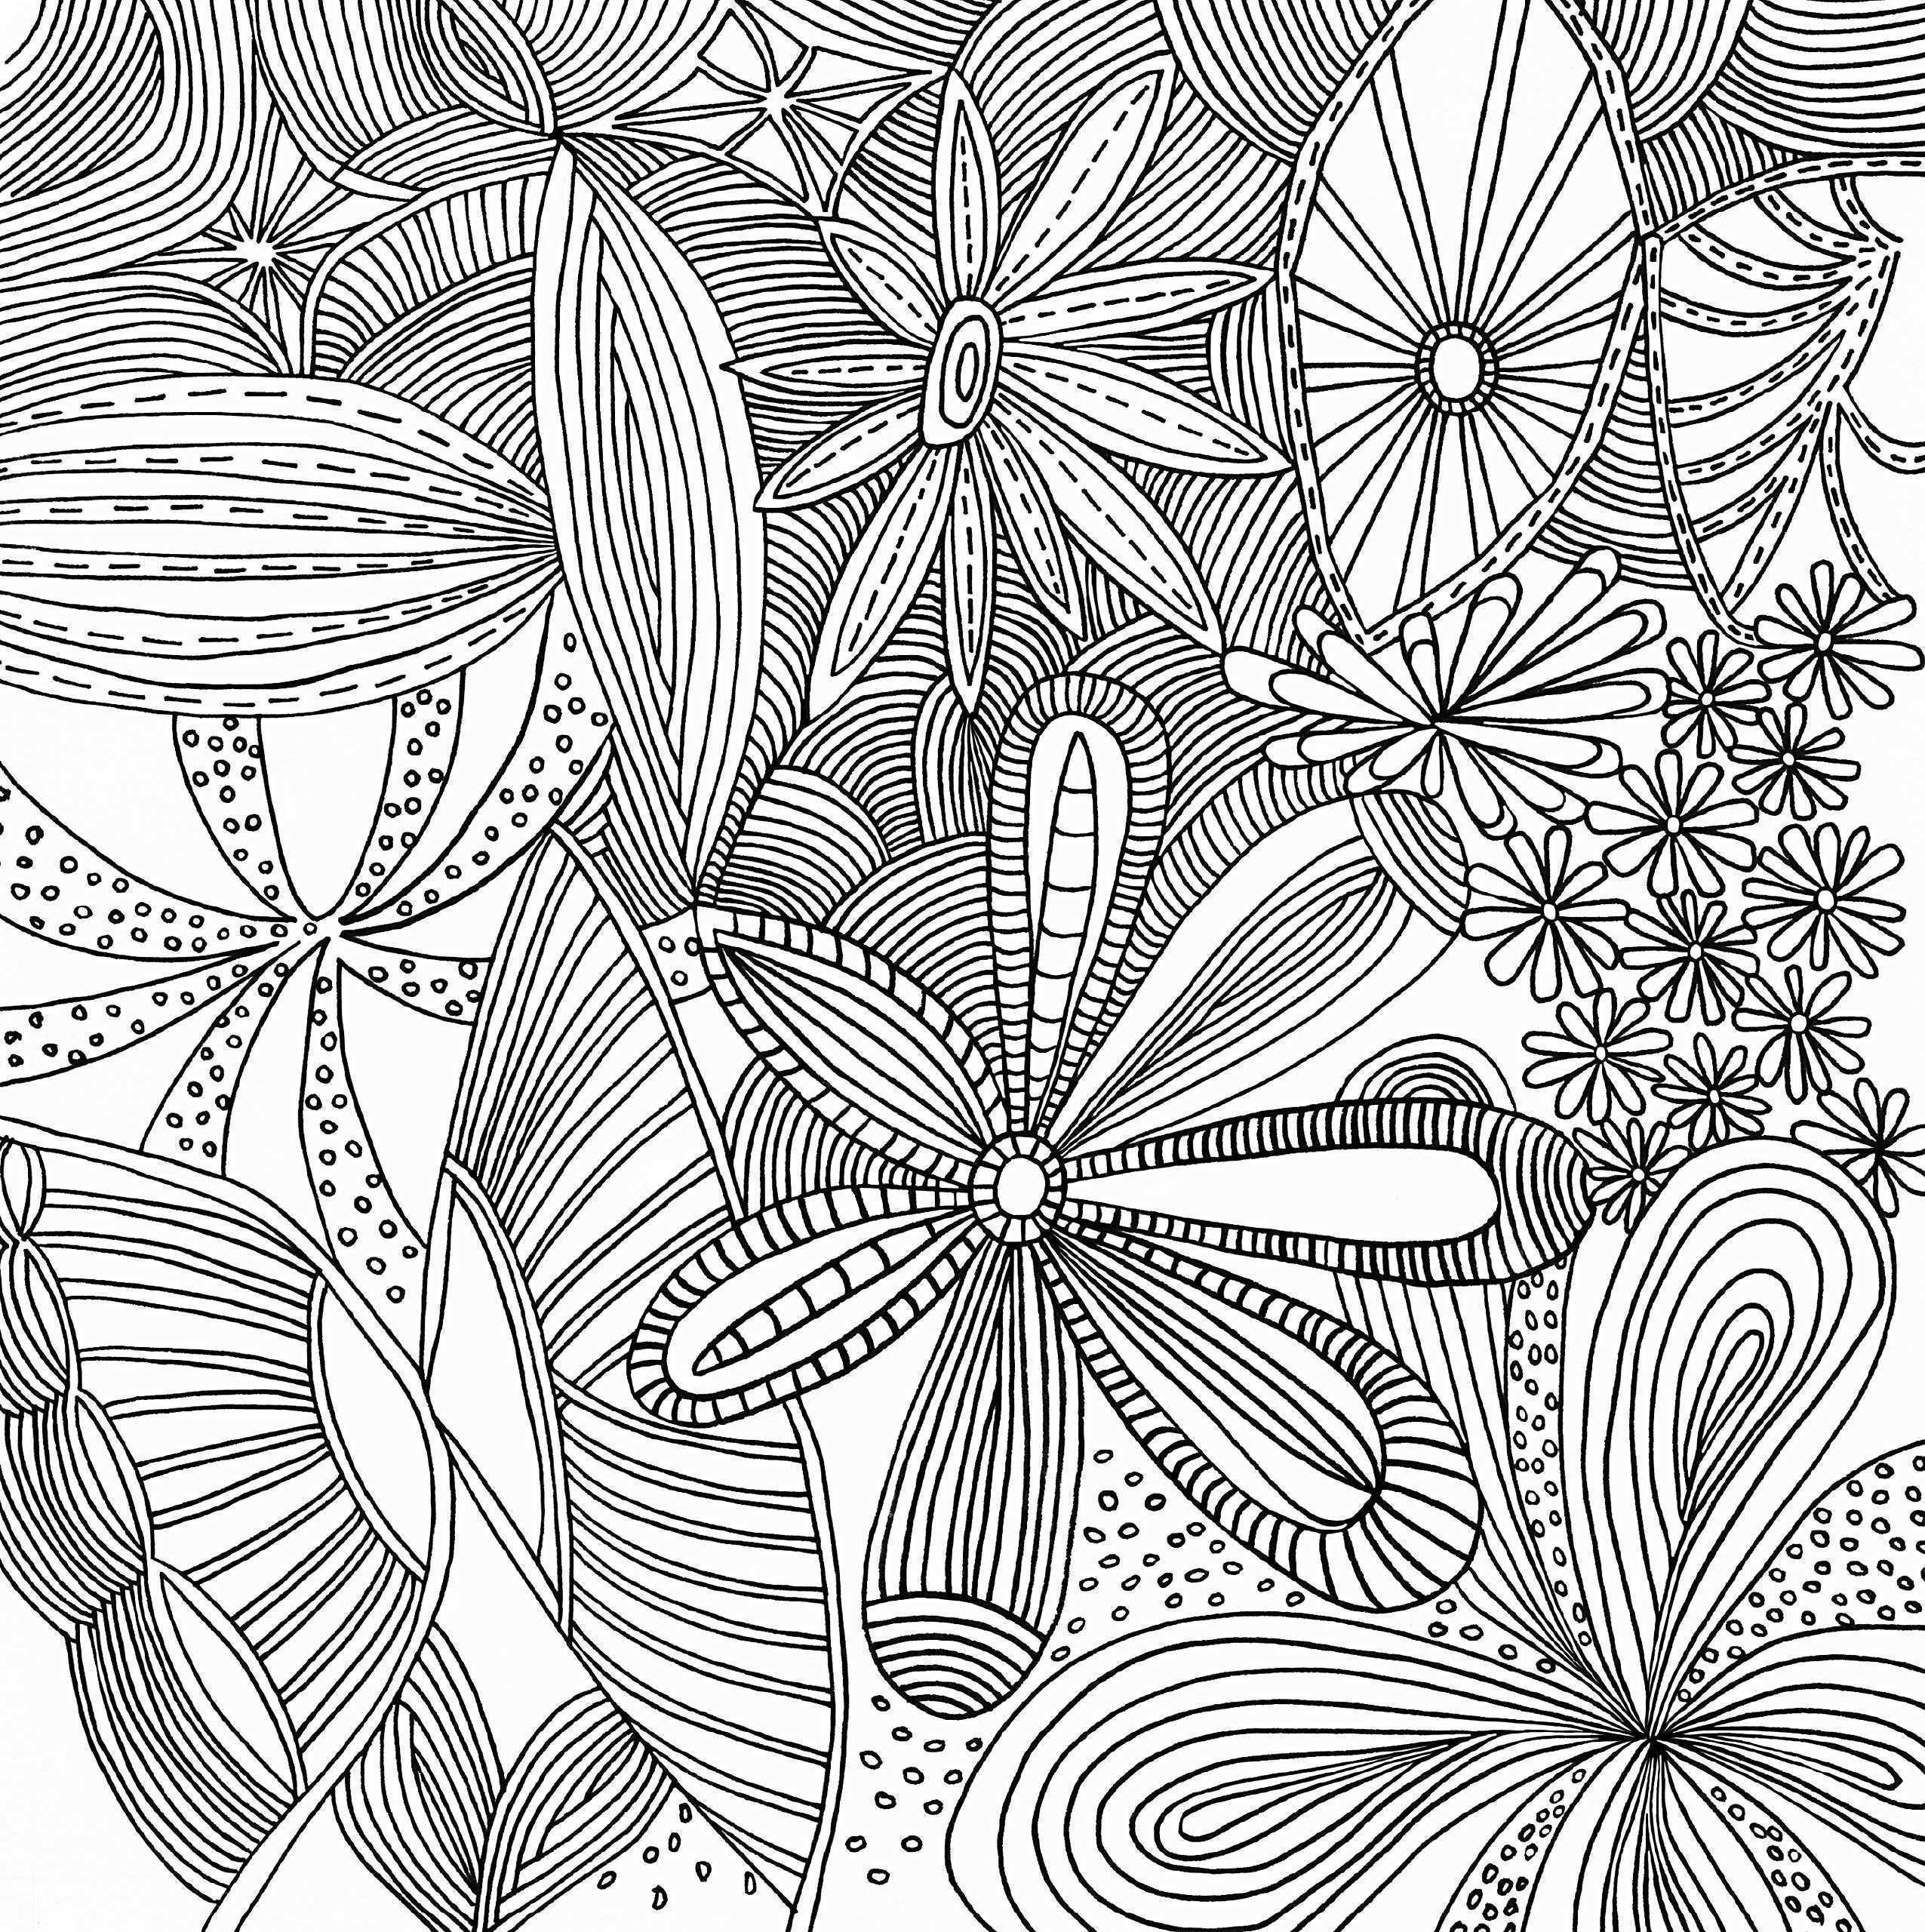 Abstract Coloring Pages to Print 1 275—1 650 – Fun Time